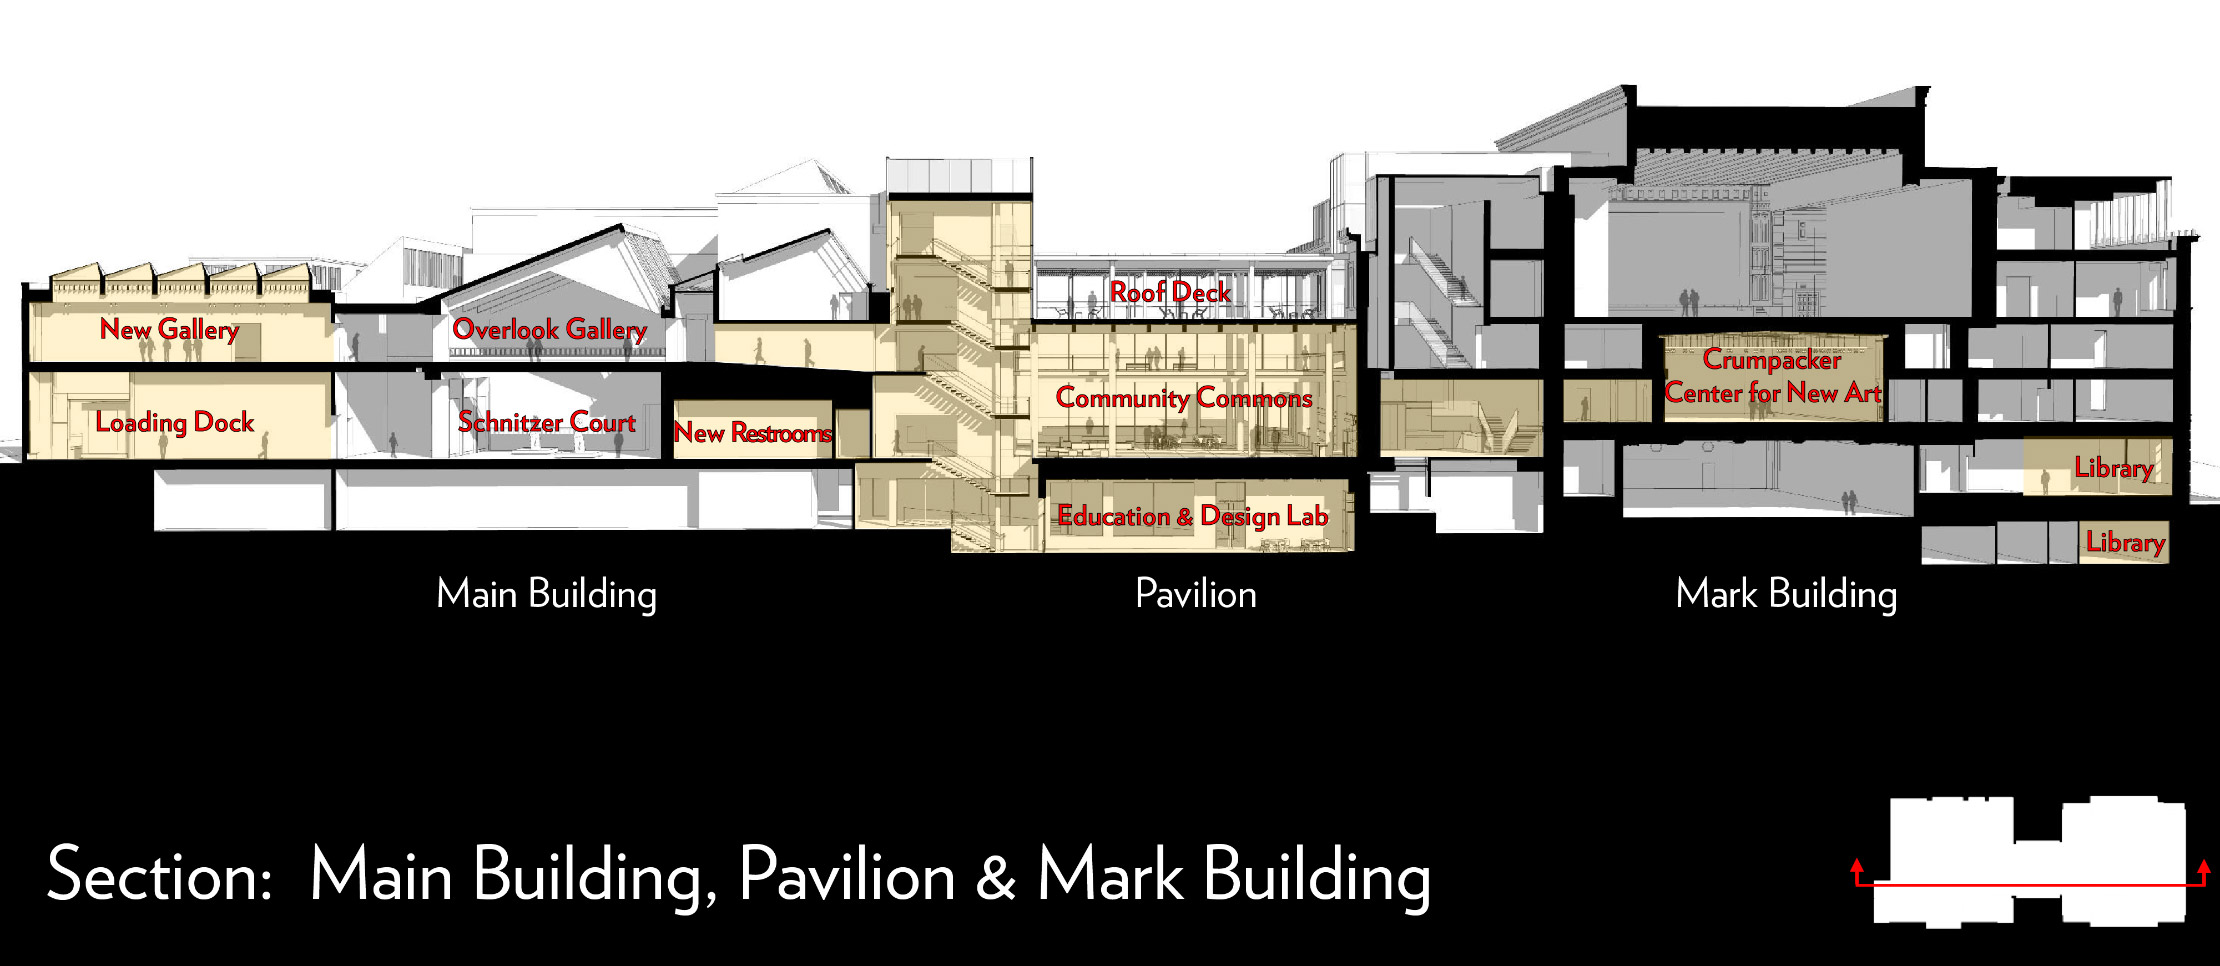 Section: Main Building, Pavilion, and Mark Building